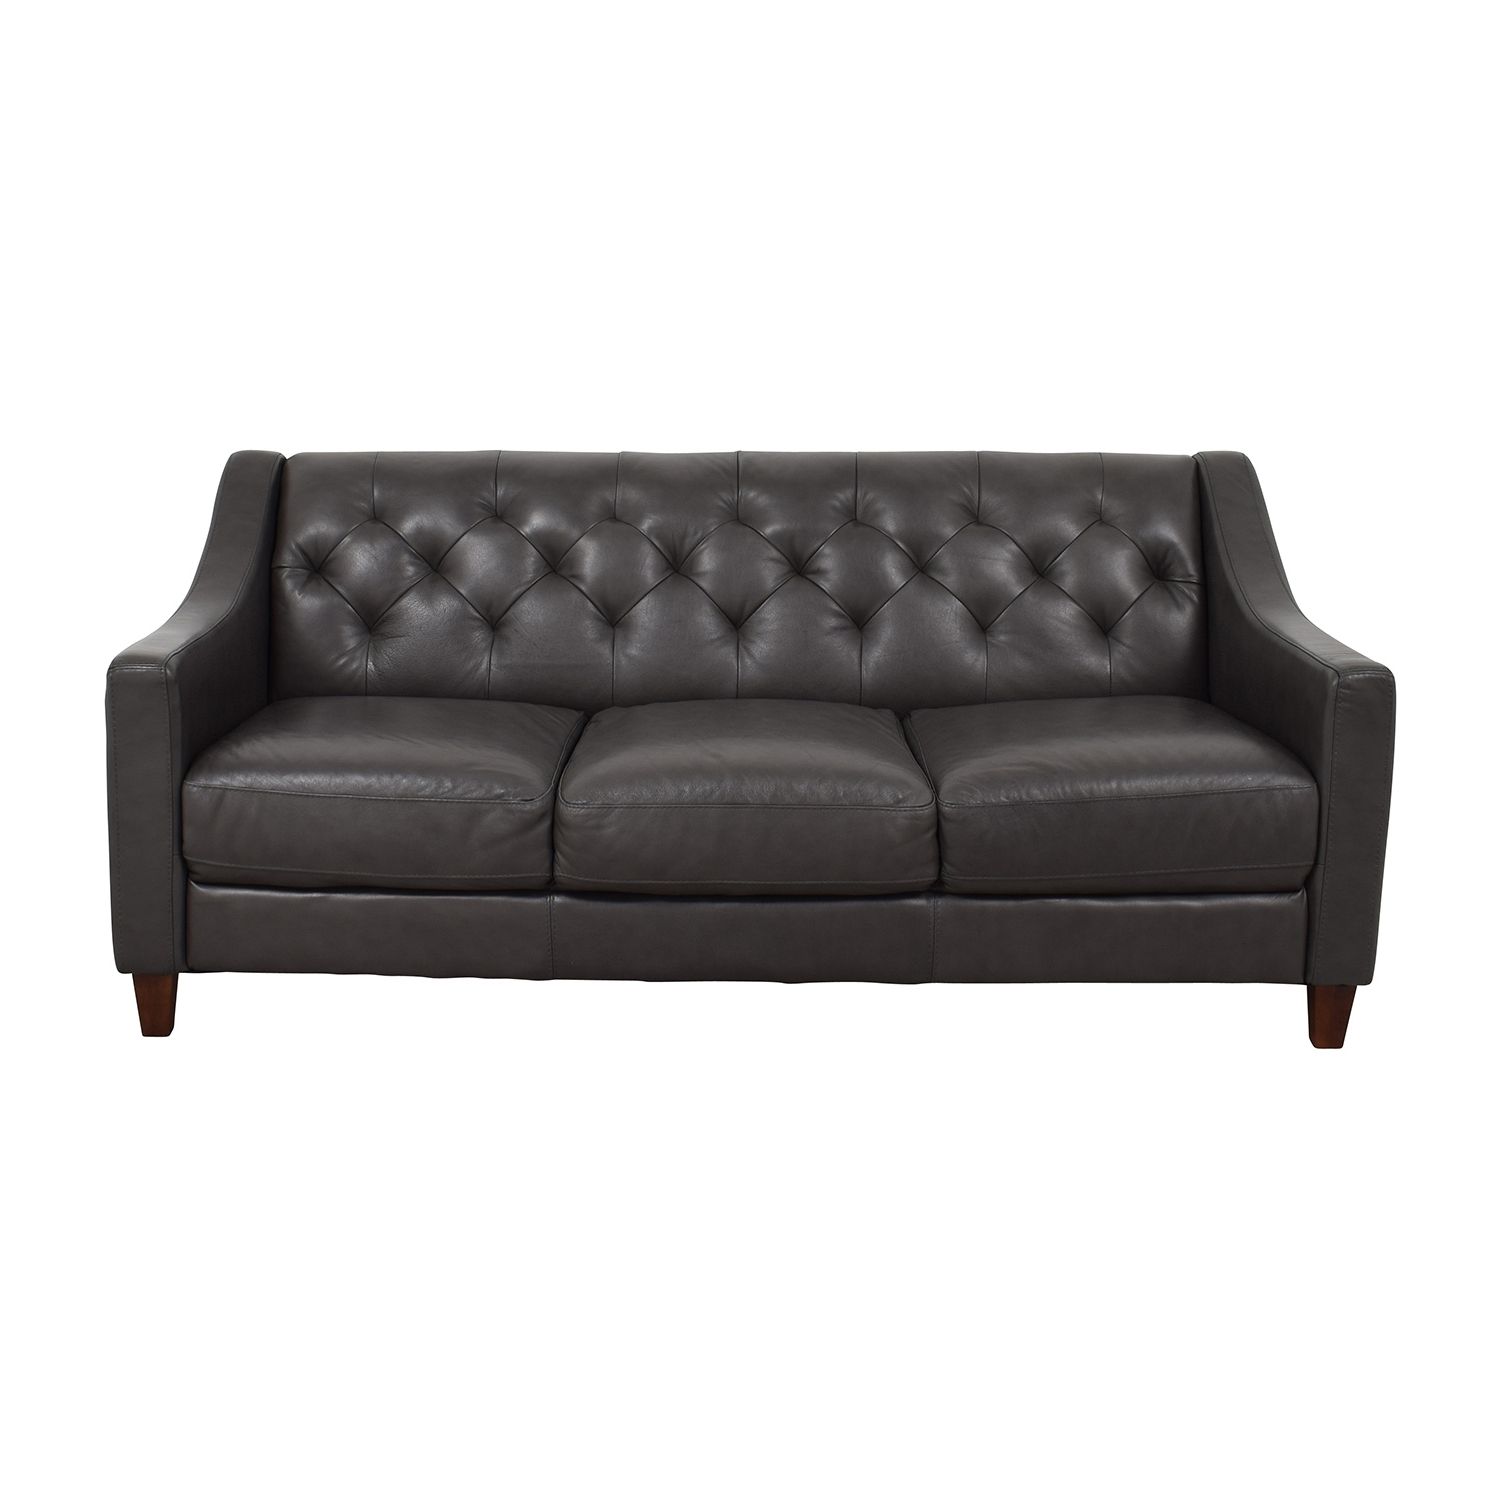 [%69% Off – Macy's Macy's Tufted Gray Leather Sofa / Sofas In Famous Macys Leather Sofas|macys Leather Sofas Regarding Well Liked 69% Off – Macy's Macy's Tufted Gray Leather Sofa / Sofas|most Popular Macys Leather Sofas Pertaining To 69% Off – Macy's Macy's Tufted Gray Leather Sofa / Sofas|well Liked 69% Off – Macy's Macy's Tufted Gray Leather Sofa / Sofas In Macys Leather Sofas%] (View 18 of 20)